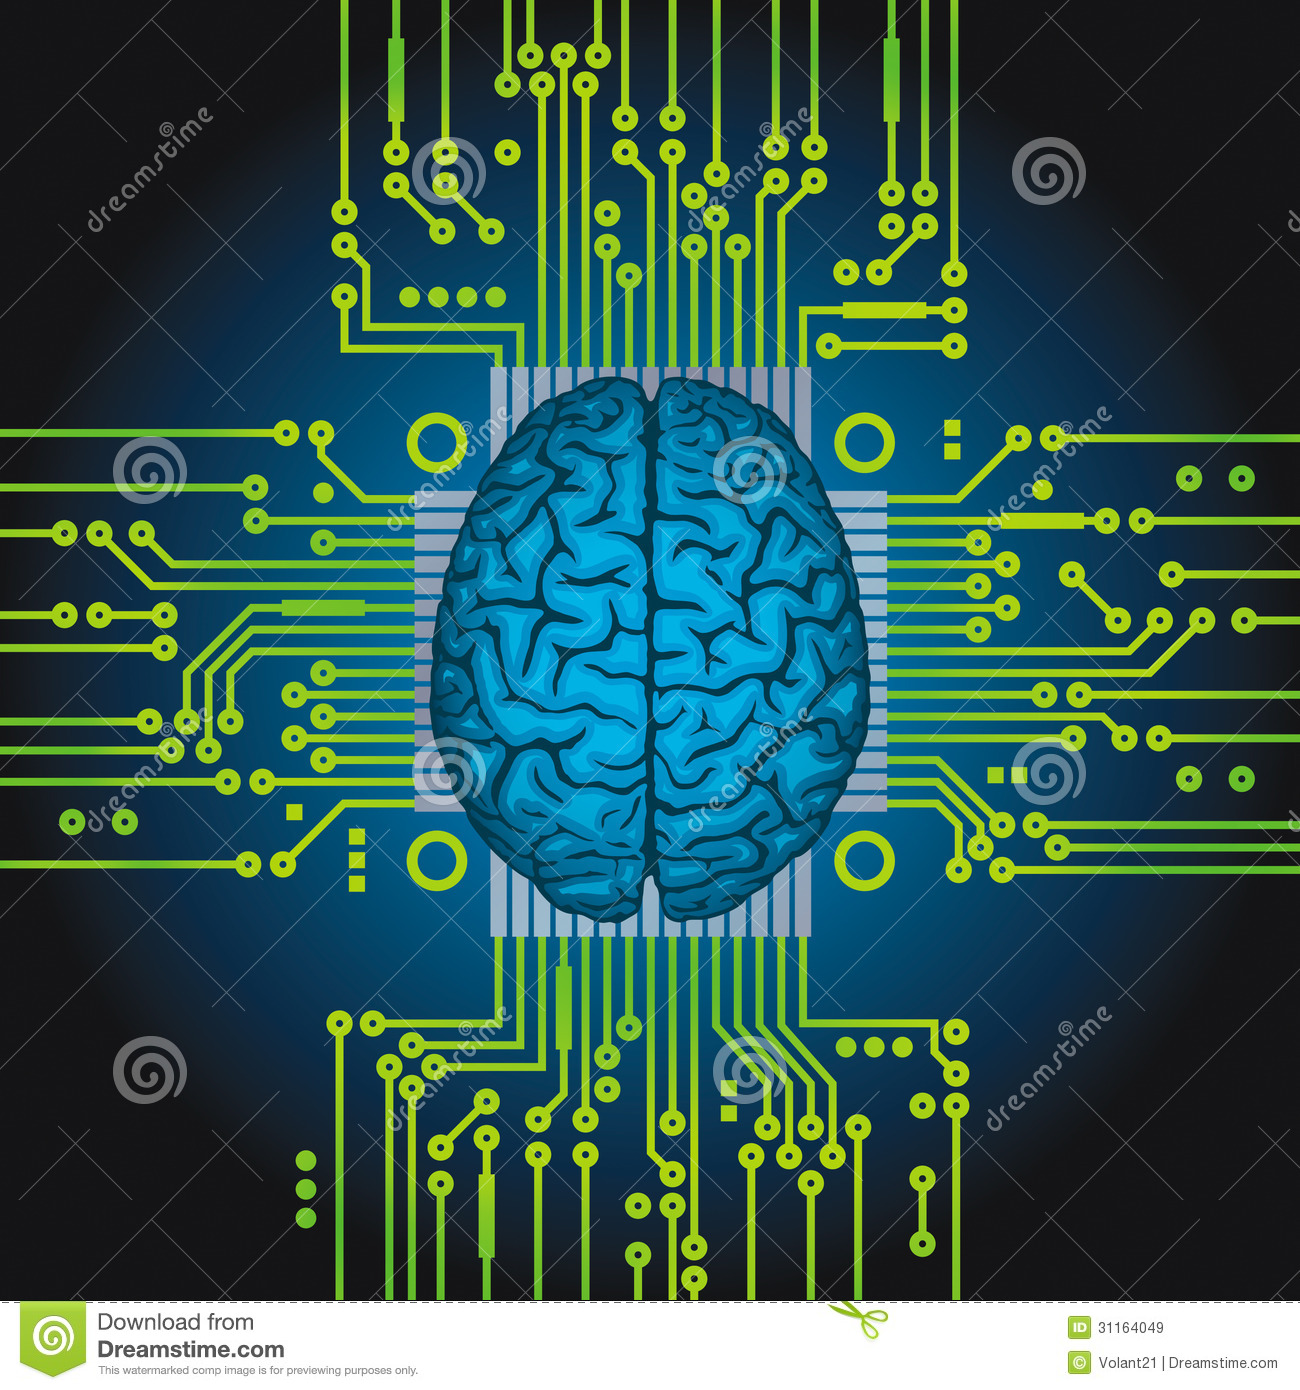 Artificial Intelligence. Royalty Free Stock Images.